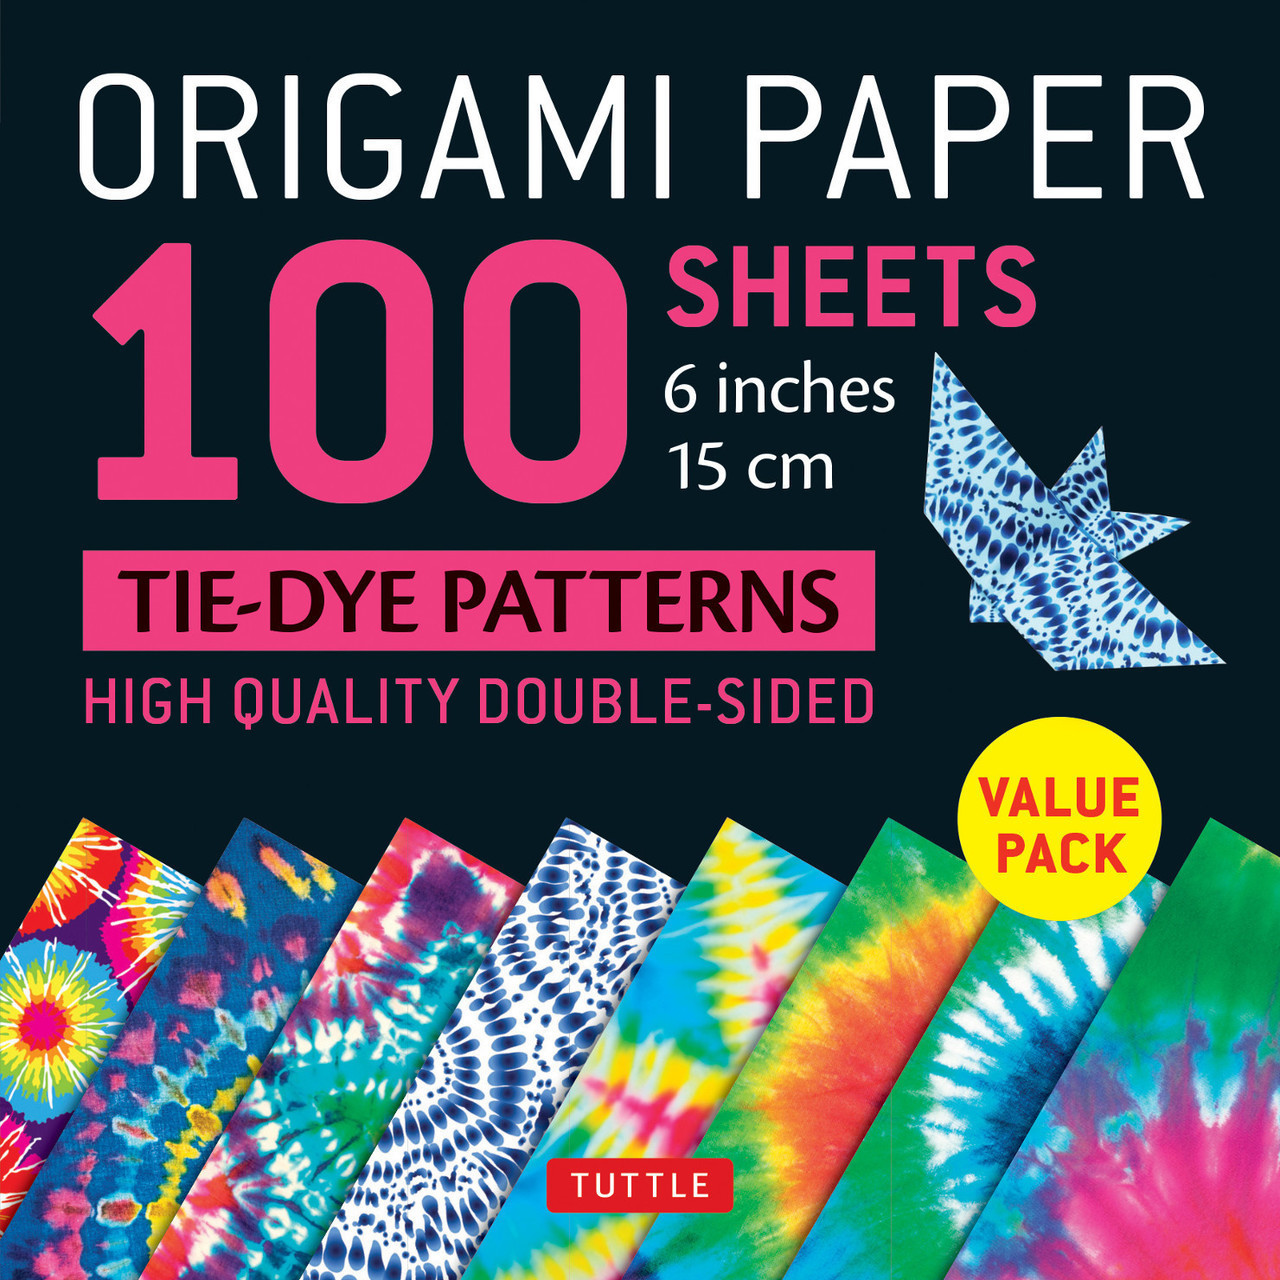 ORIGAMI PAPER 100 SHEETS TIE DYE PATTERNS /ANGLAIS